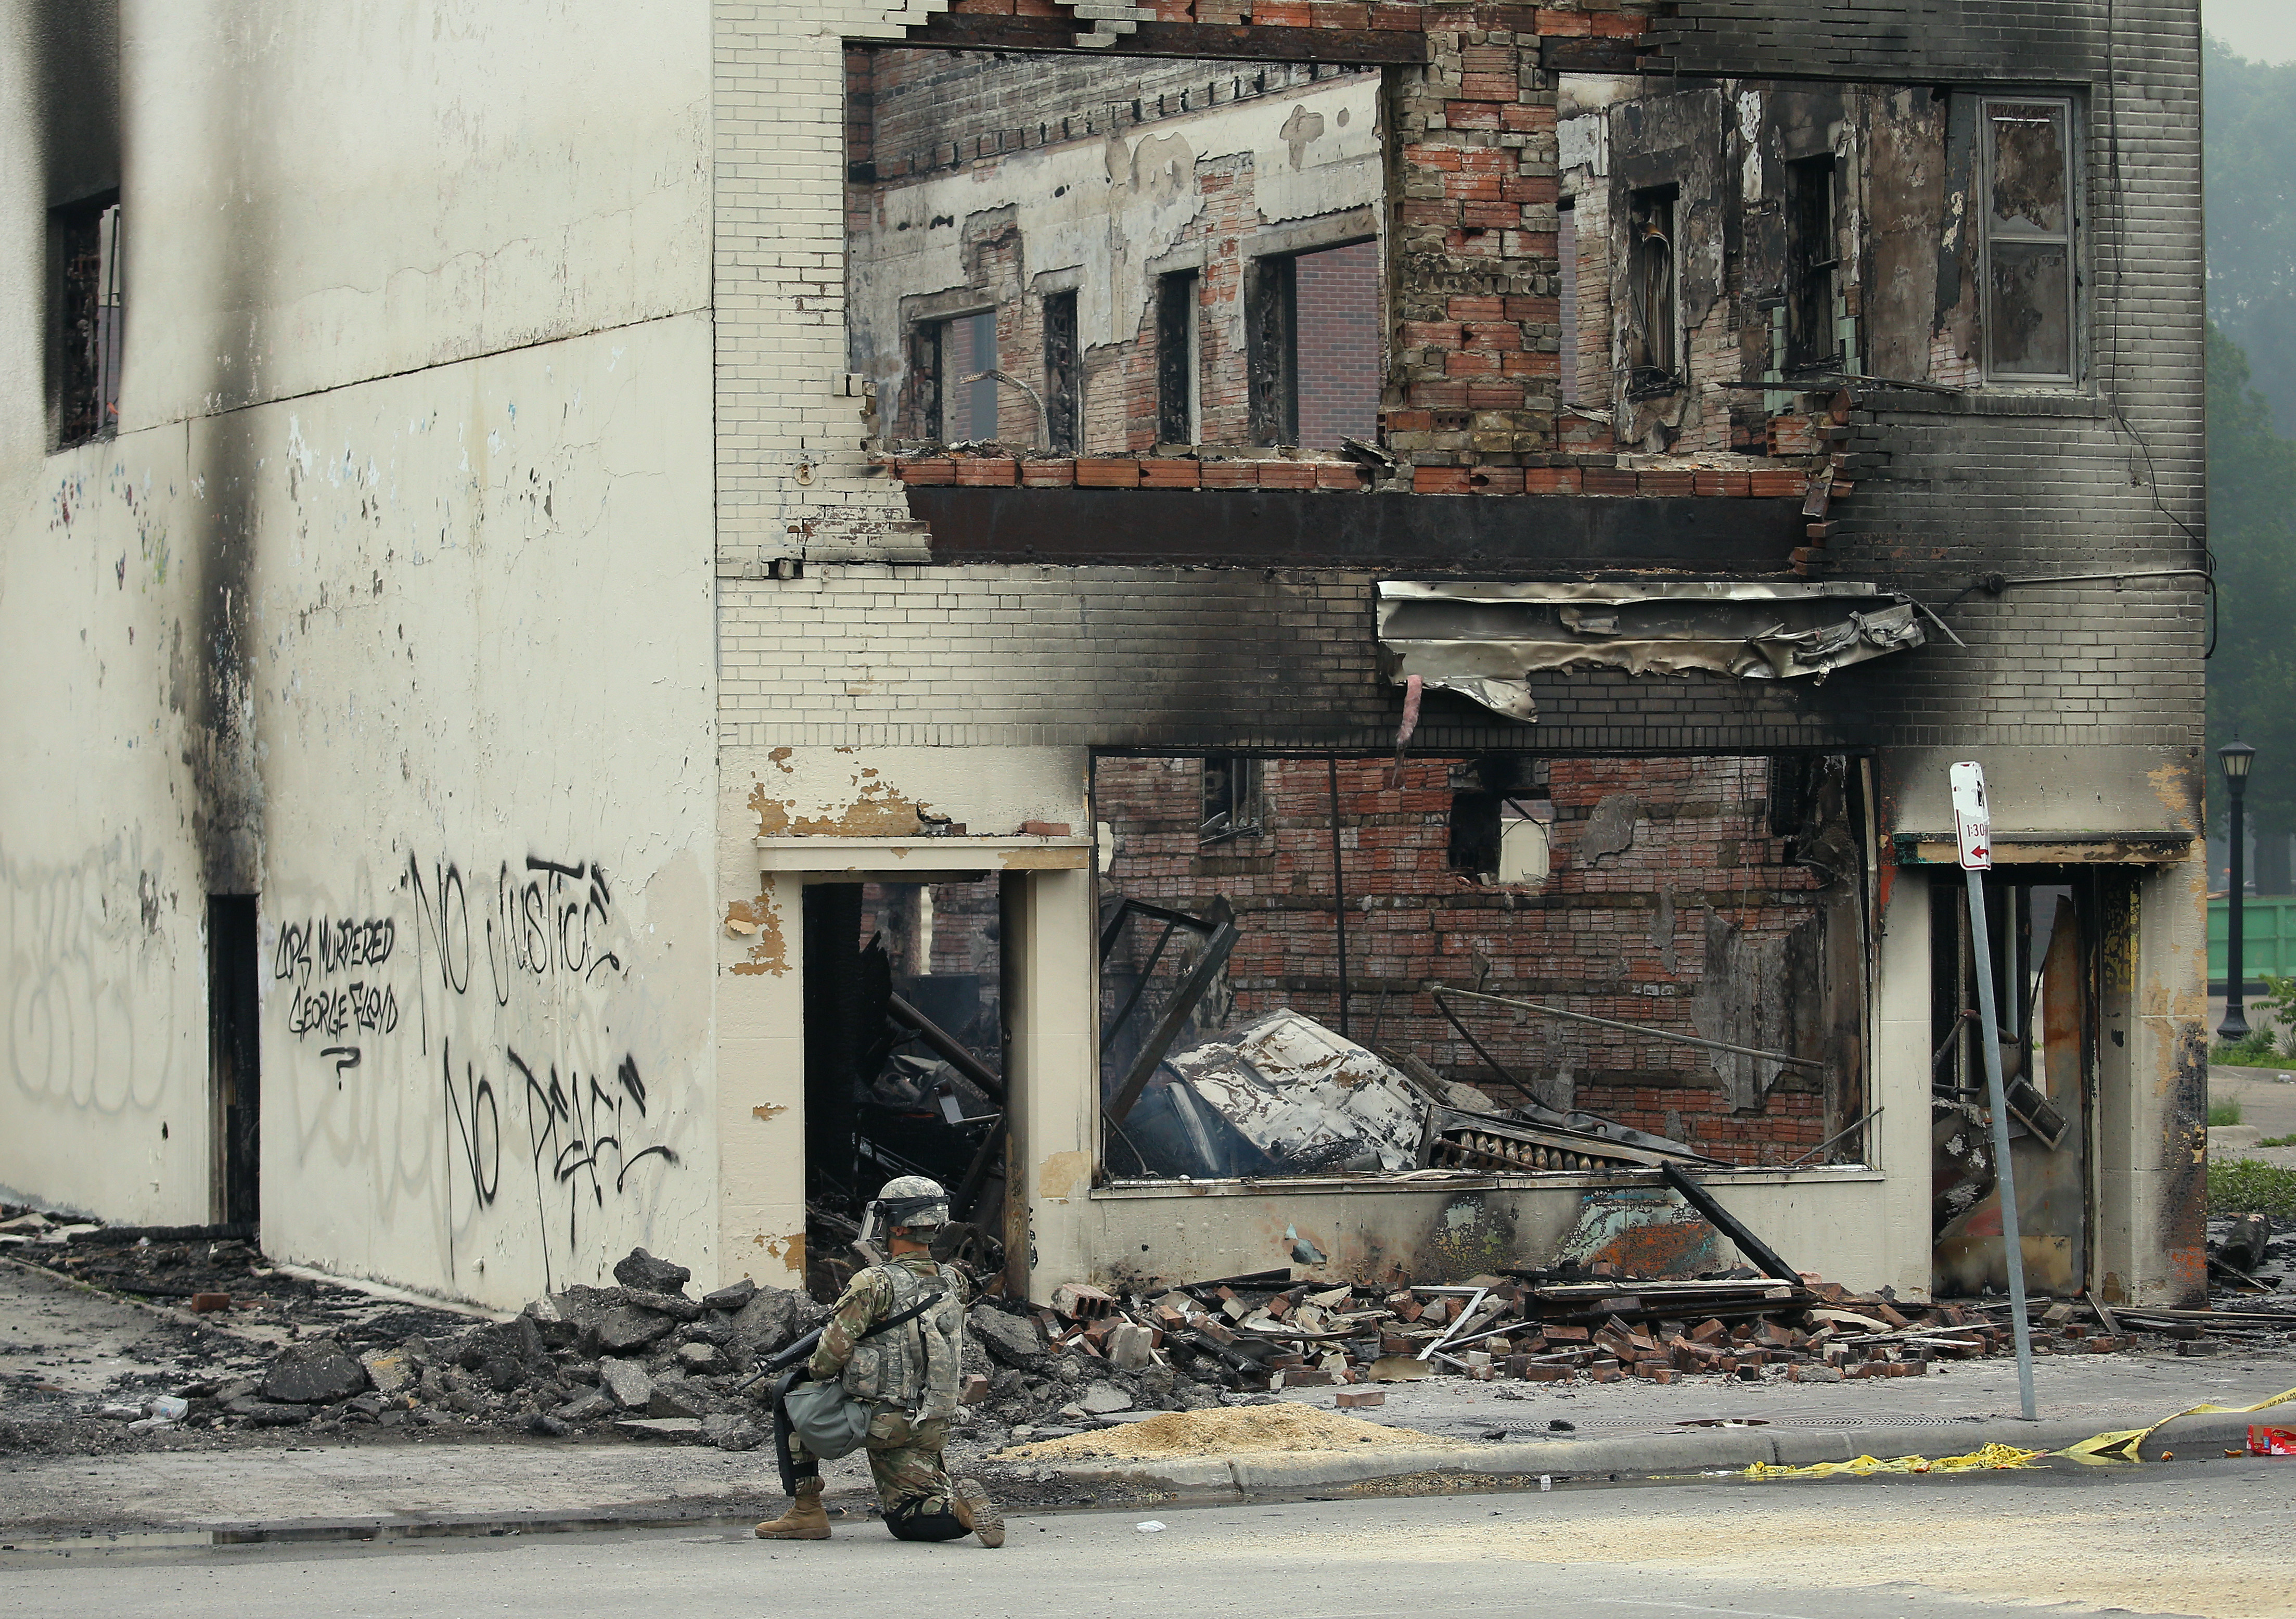 A member of the National Guard patrols near a burned out building on the fourth day of protests on May 29, 2020 in Minneapolis, Minnesota. (Photo by Scott Olson/Getty Images)